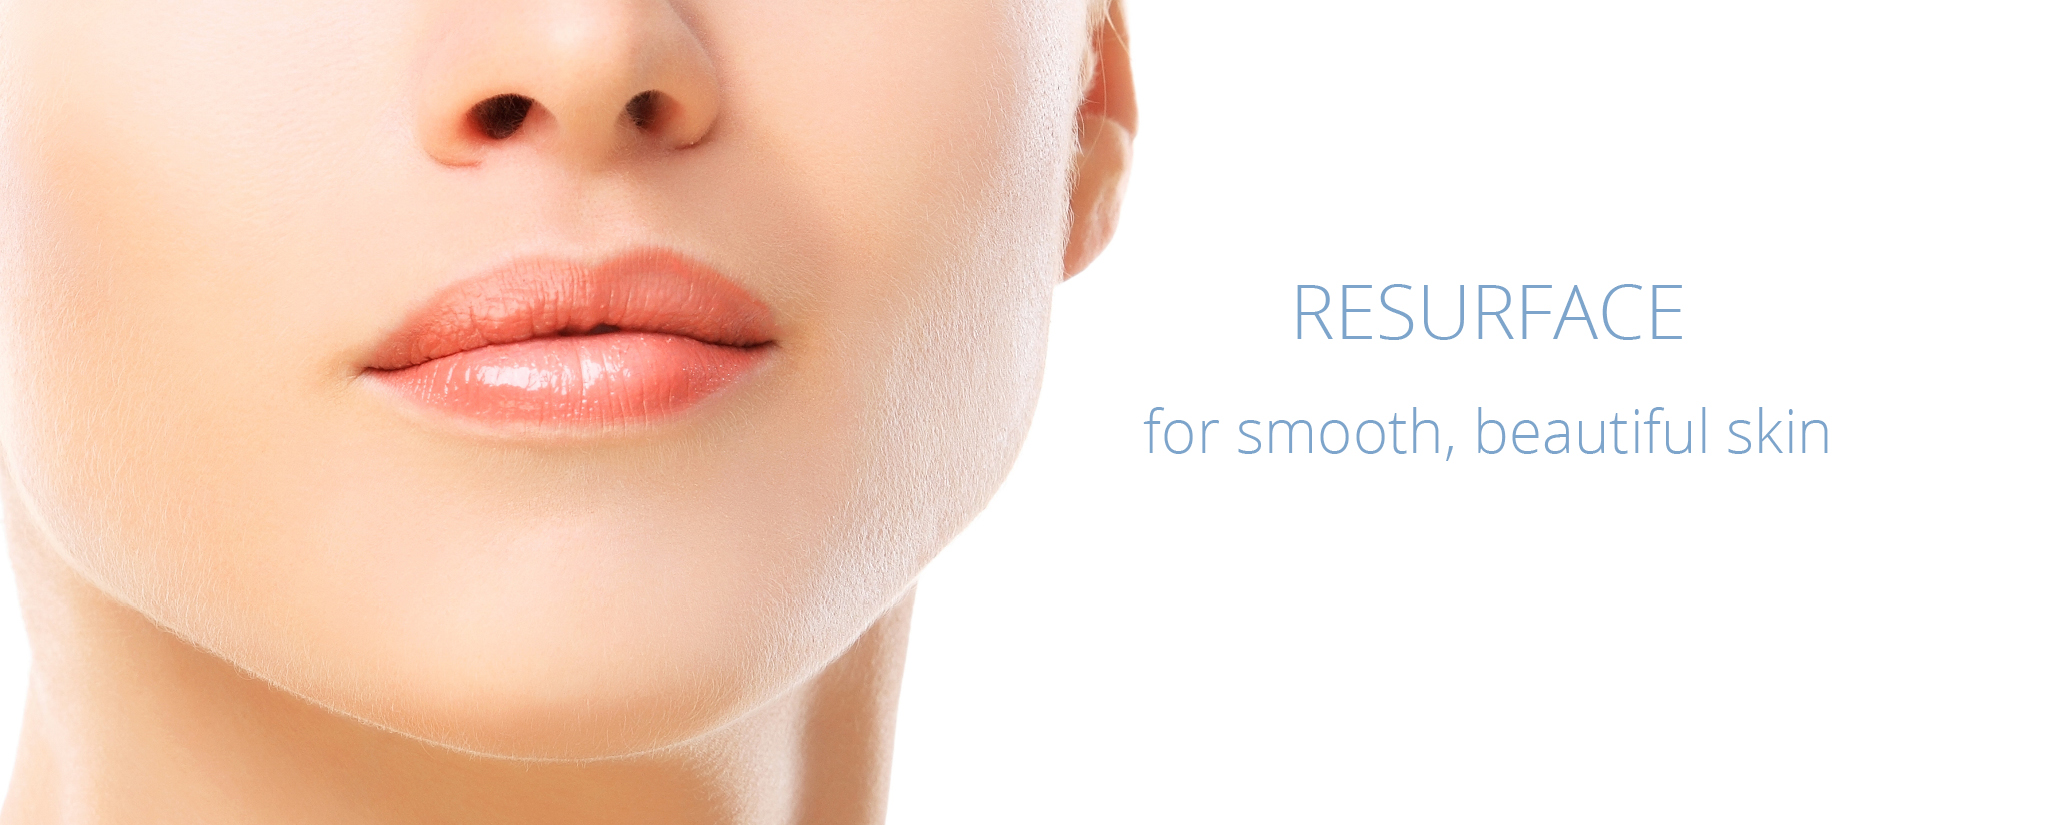 Improve Skin Smoothness With Twinlight Fractional